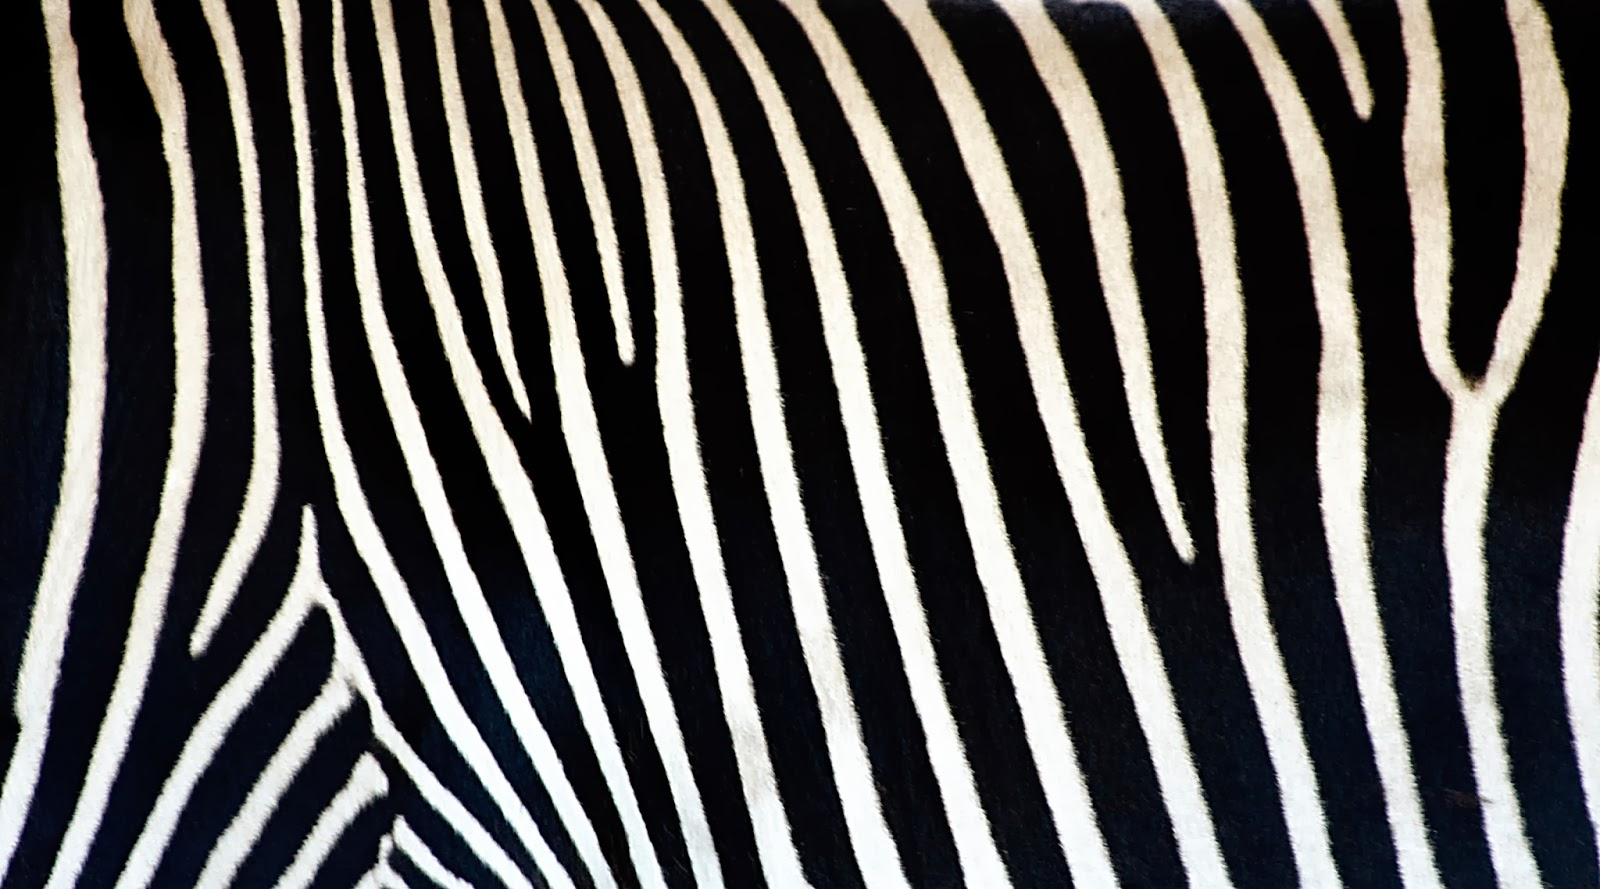 Zebra WallpaperZebra Print WallpaperZebra Wallpaper BorderPink 1600x889